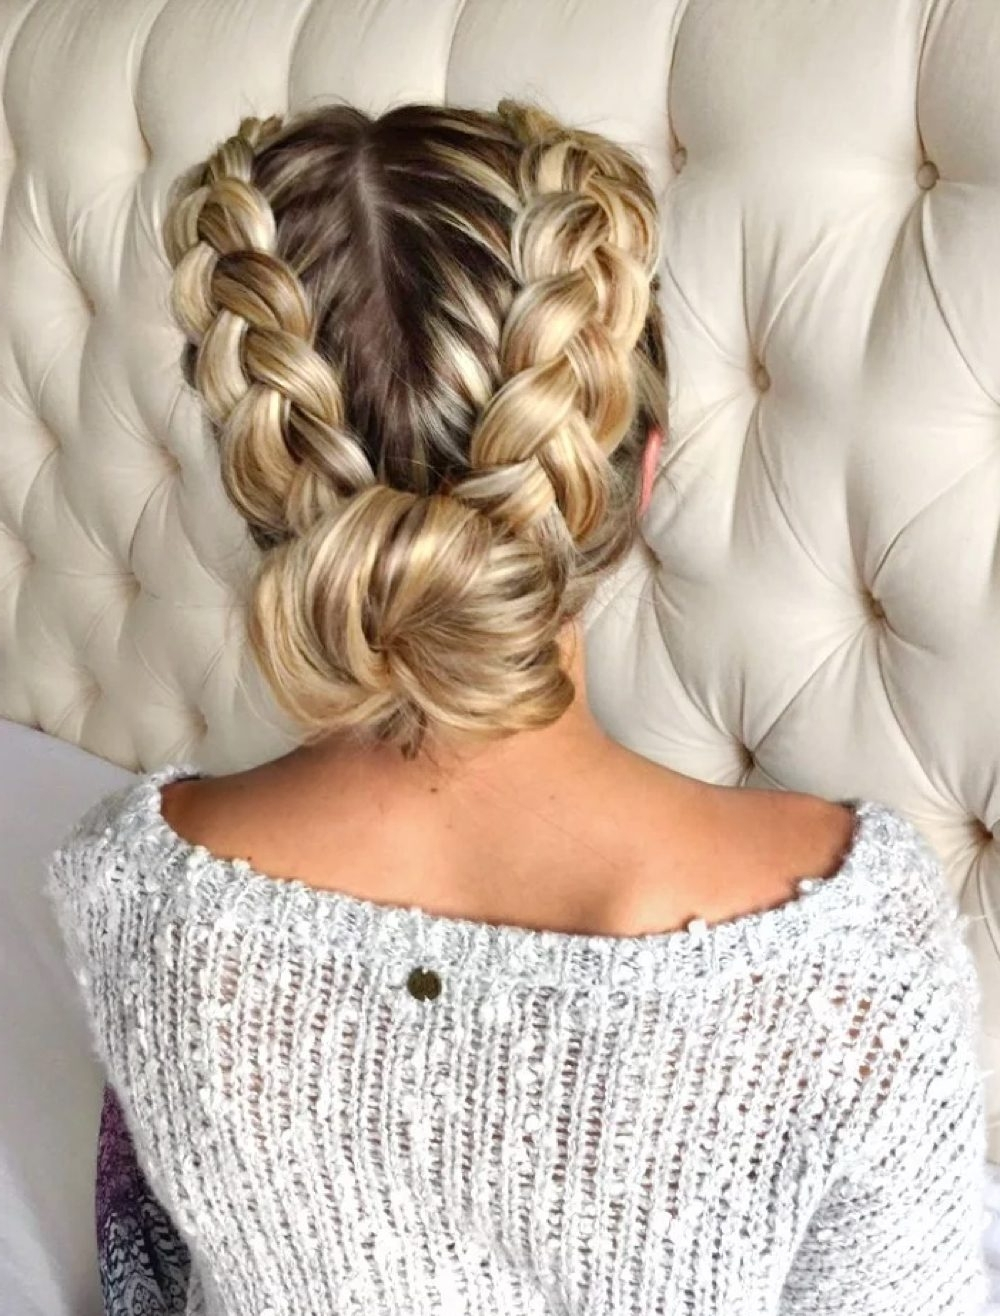 2018 Double Braids Updo Hairstyles Pertaining To 28 Gorgeous Braided Updo Ideas For  (View 2 of 15)